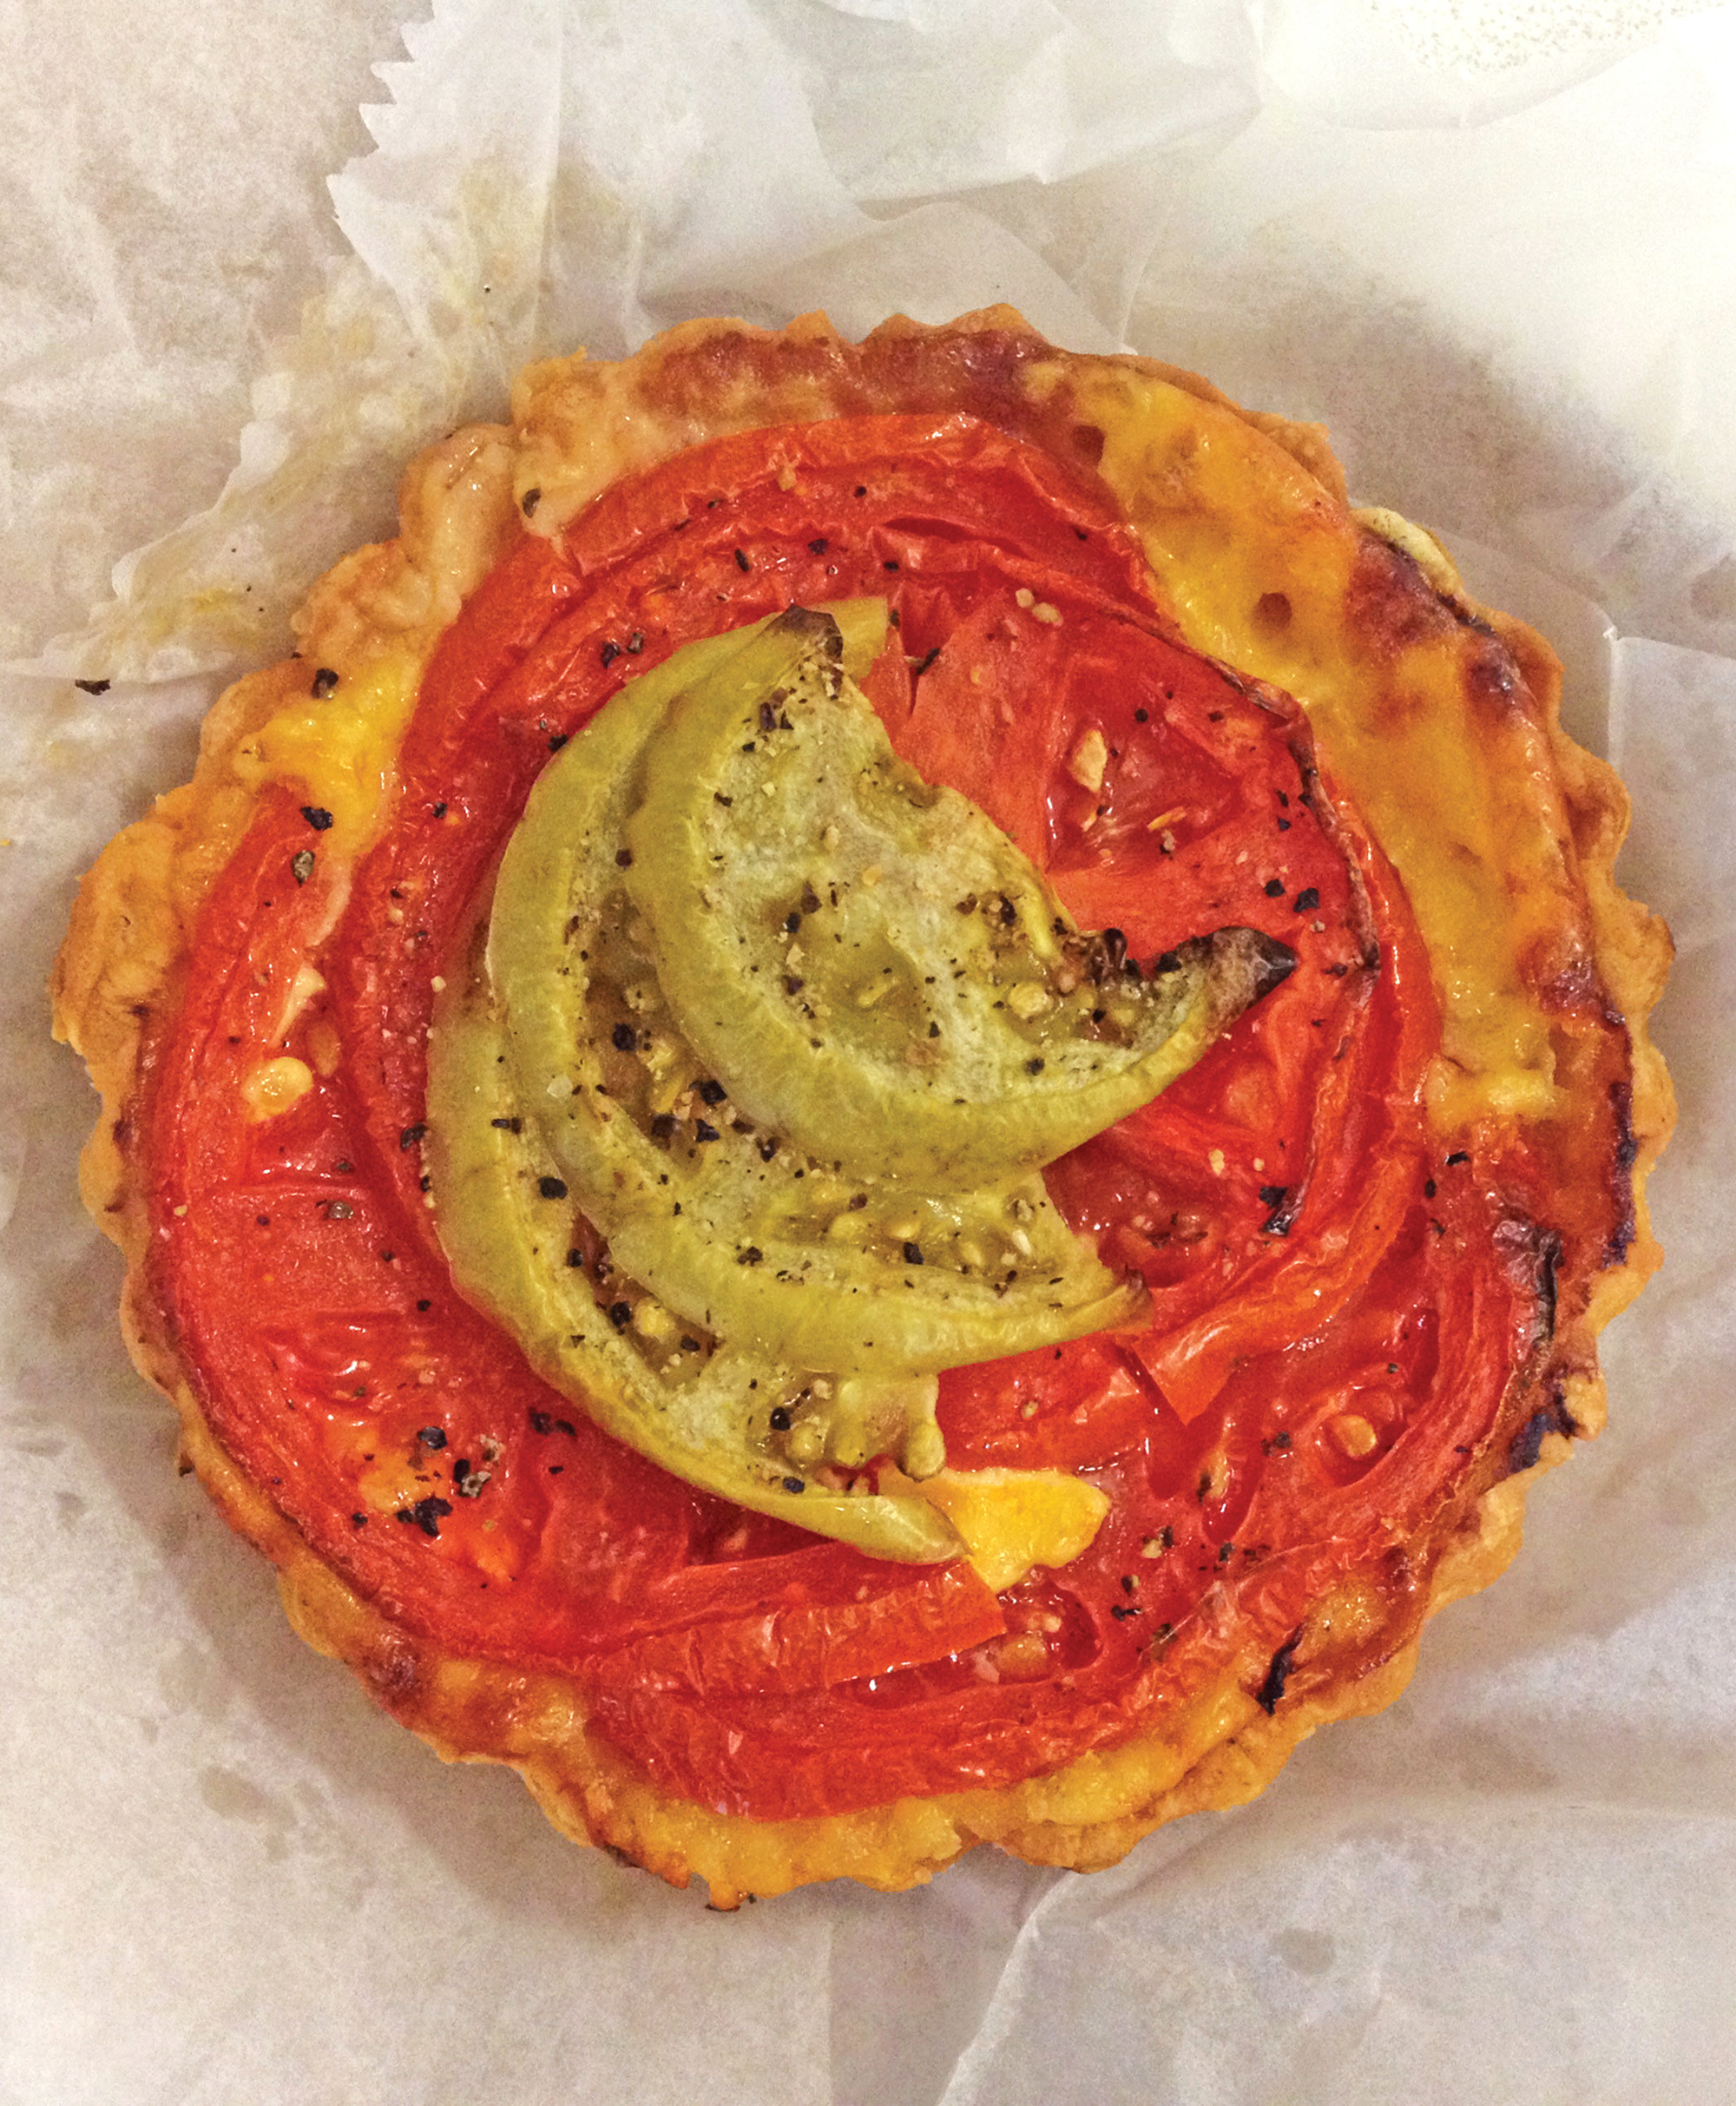 Favorite breakfast treat: Tomato pie from Bold Bean Coffee Roasters